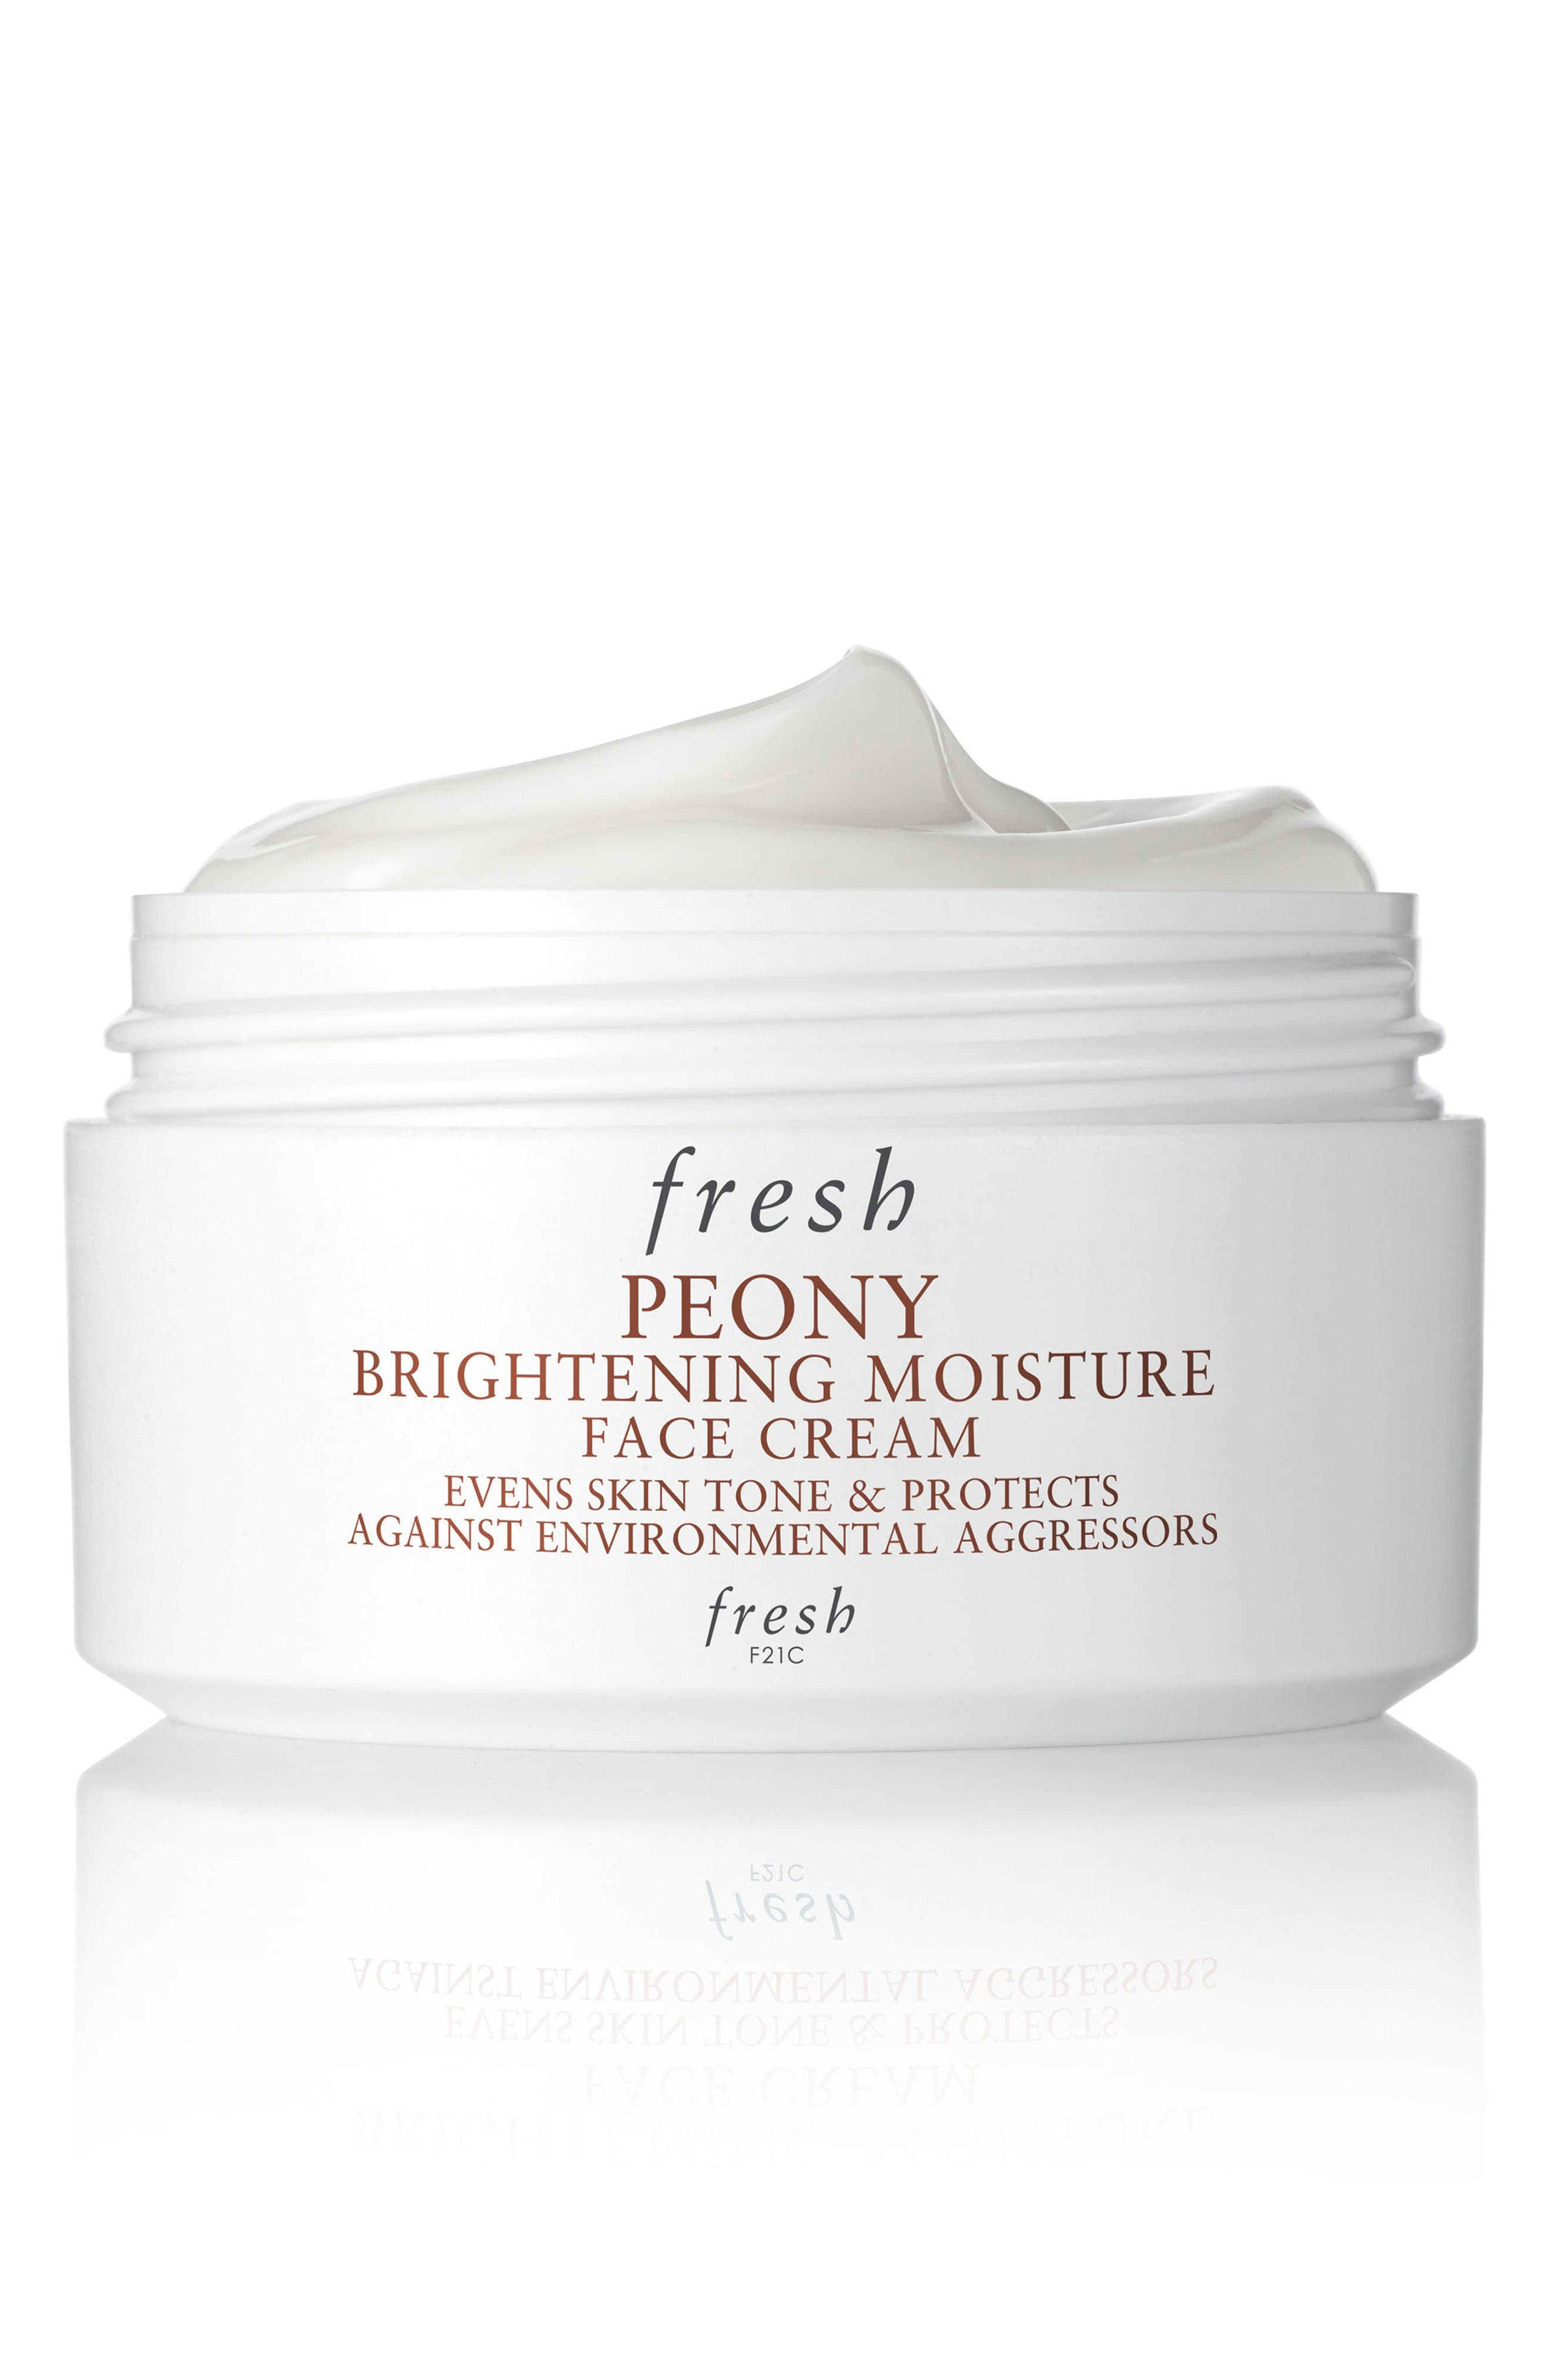 Peony Brightening Moisture Face Cream,                             Main thumbnail 1, color,                             No Color